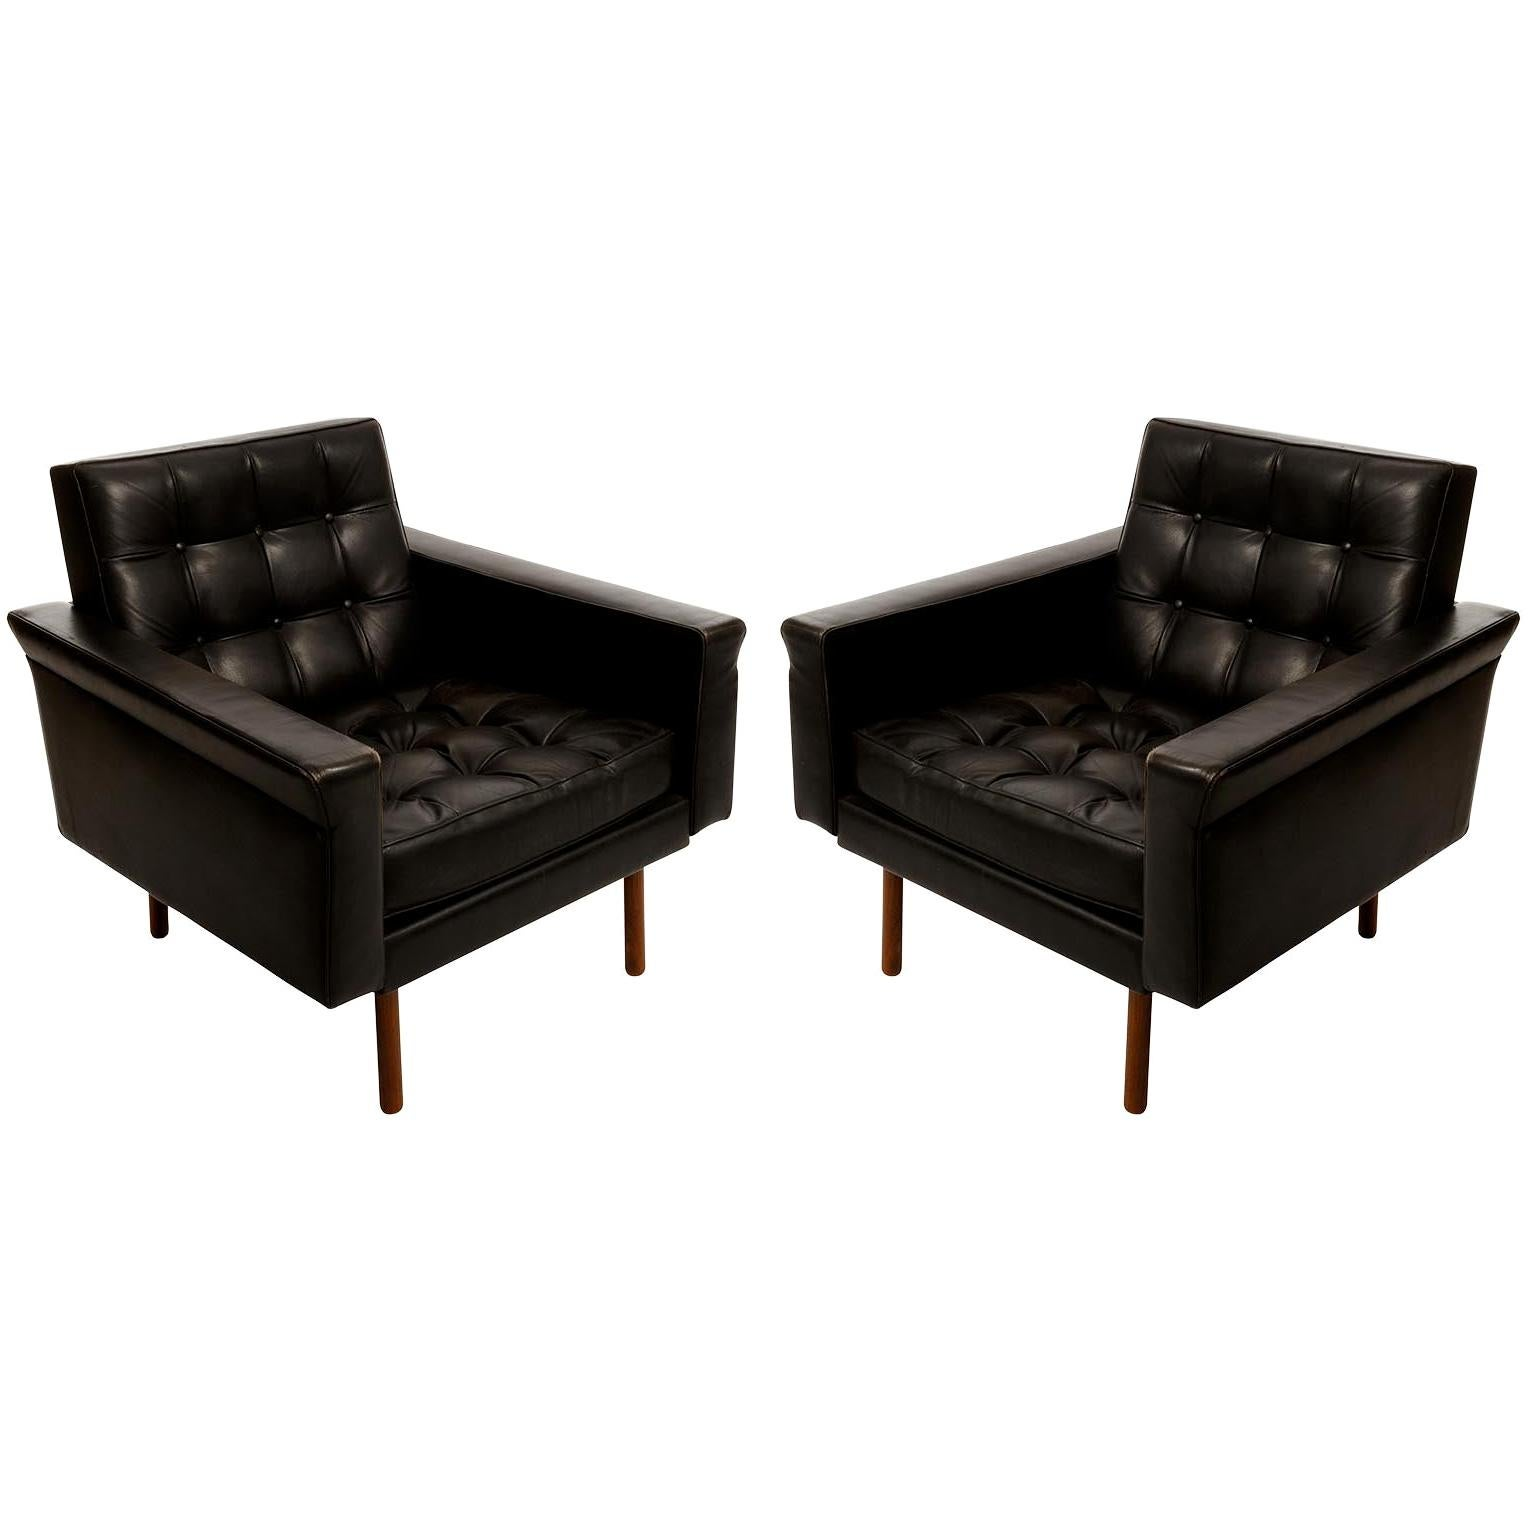 Pair of Johannes Spalt Armchairs Lounge Chairs Wittmann Black Leather Wood 1960s